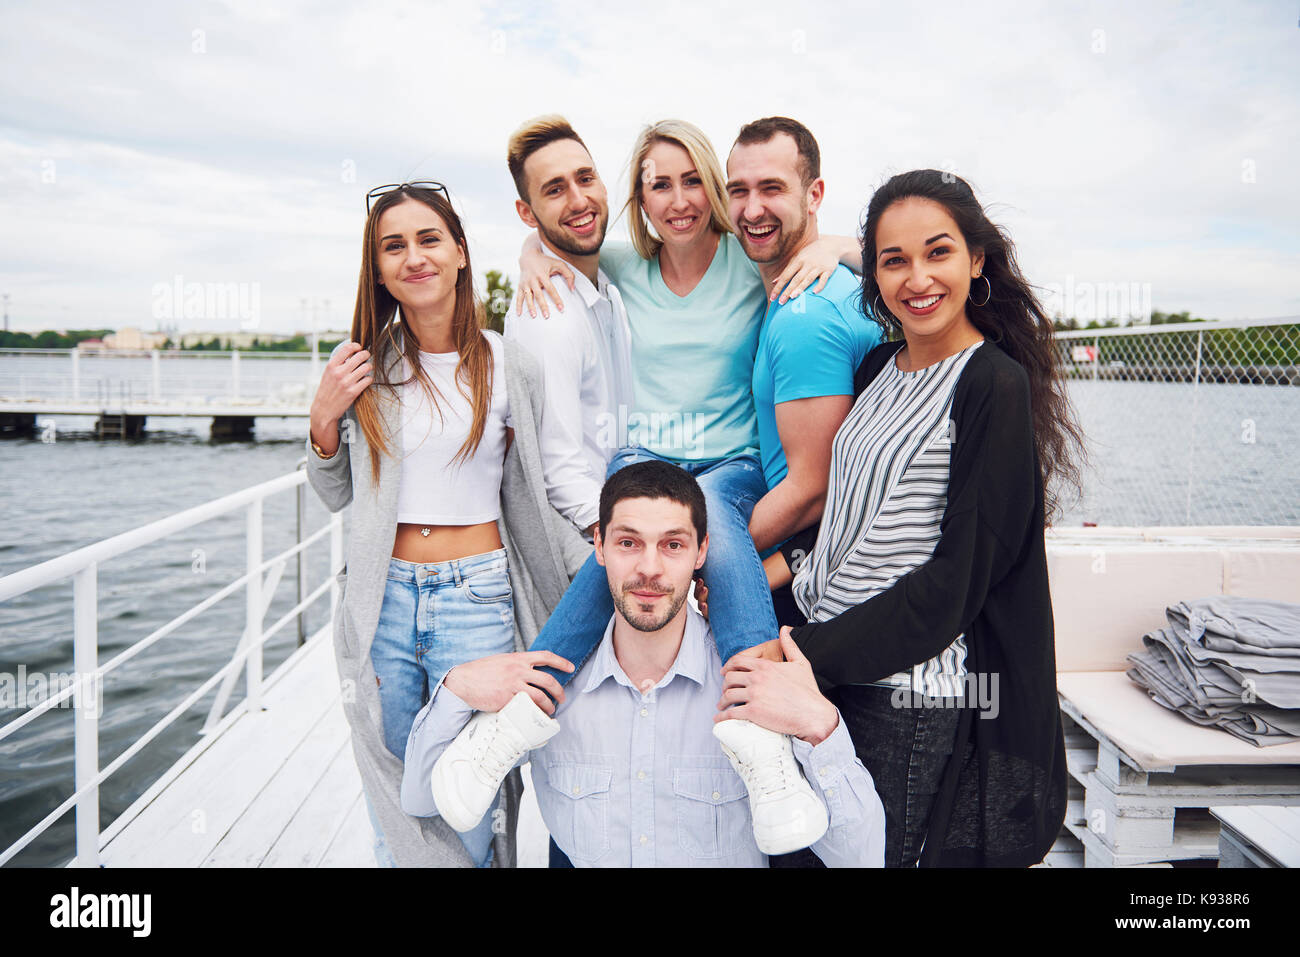 Portrait of a group of young people sitting on the edge of the pier, outdoors in nature. Friends enjoying a game - Stock Image